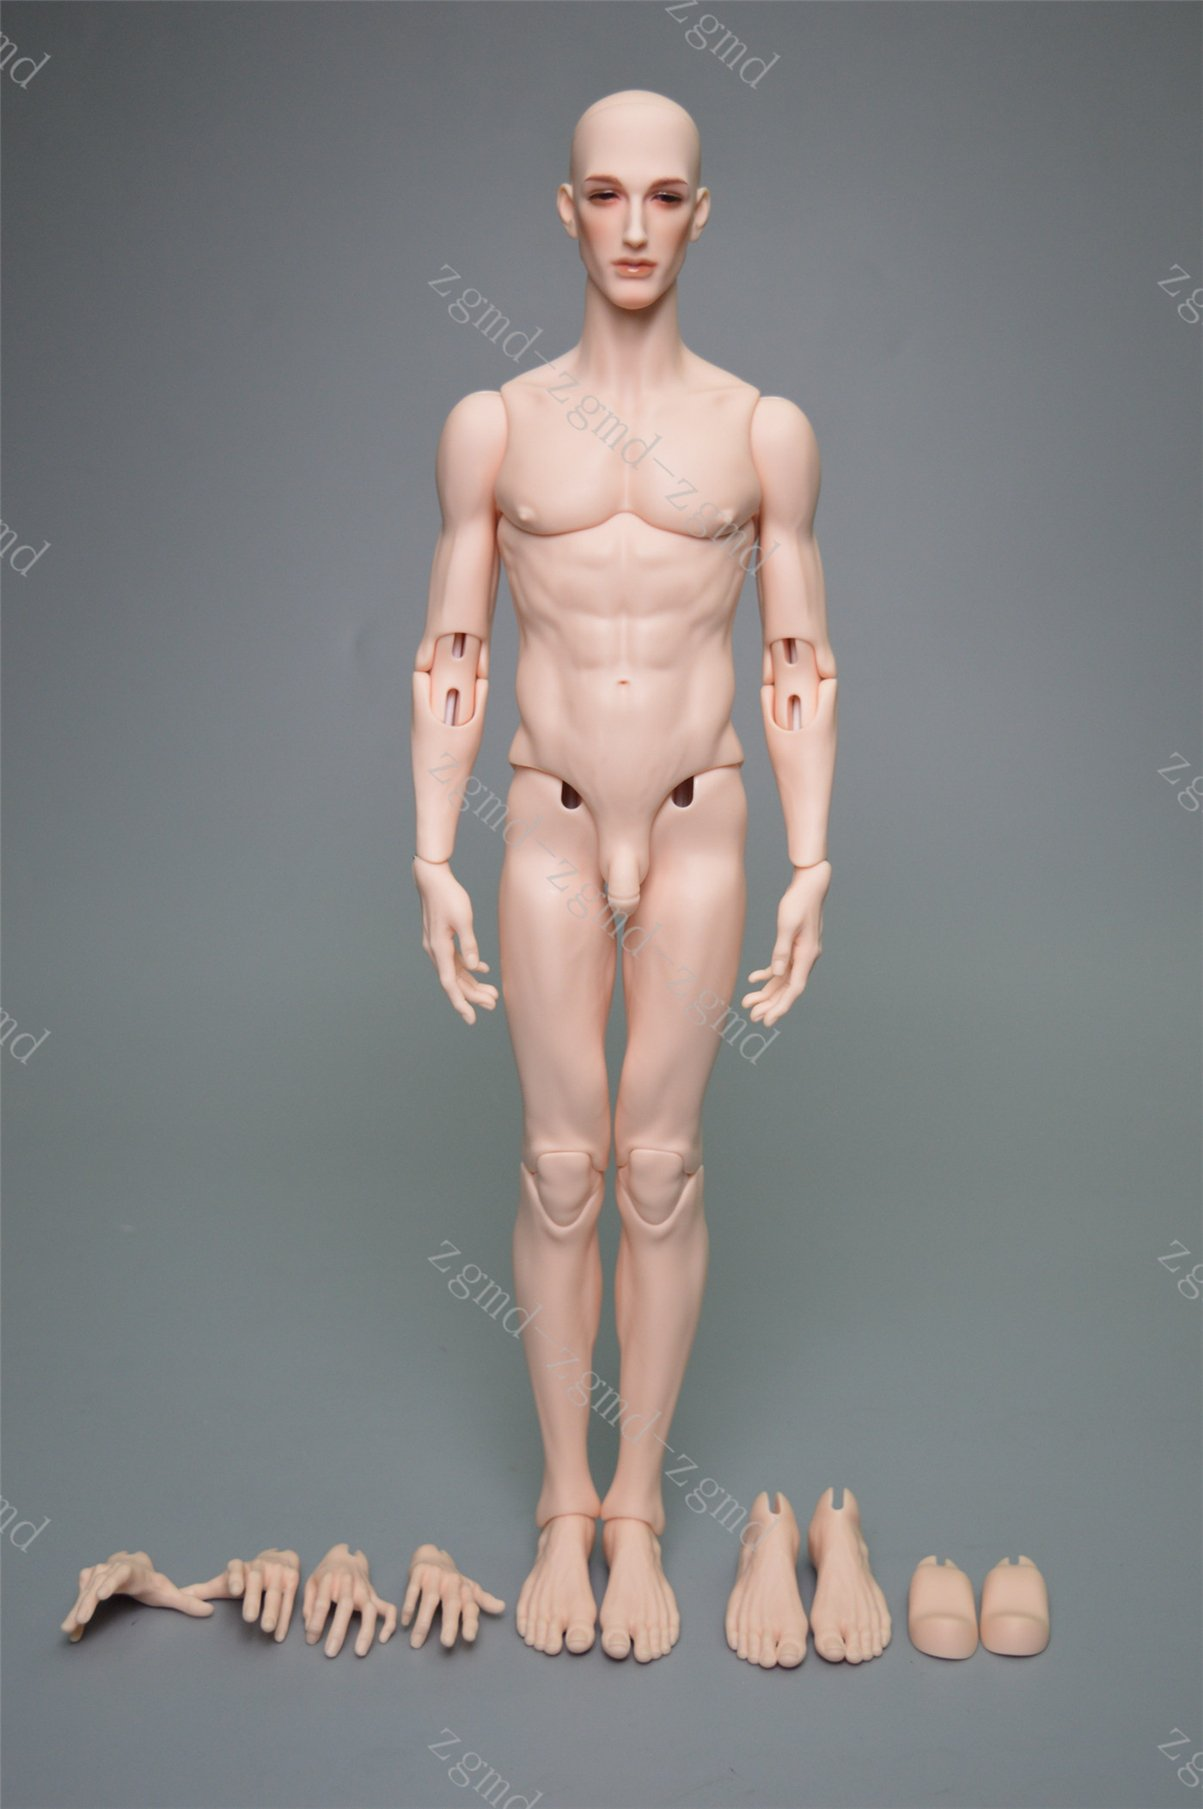 Zgmd 1/4 BJD doll SD David male doll contains make-up by Zgmd (Image #1)